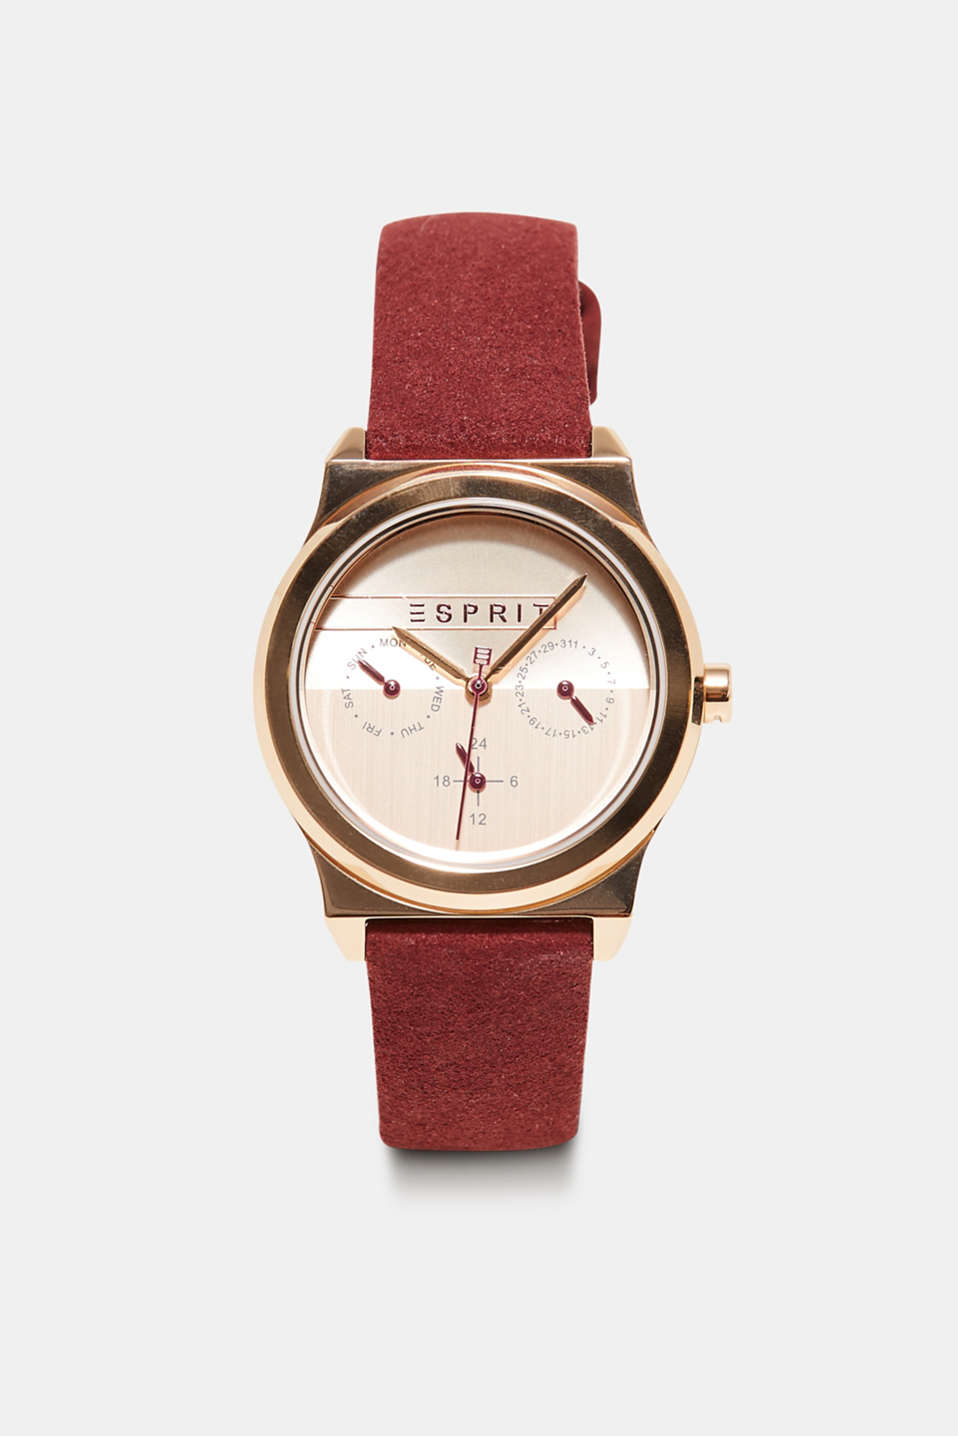 Esprit - Stainless-steel watch with a suede strap